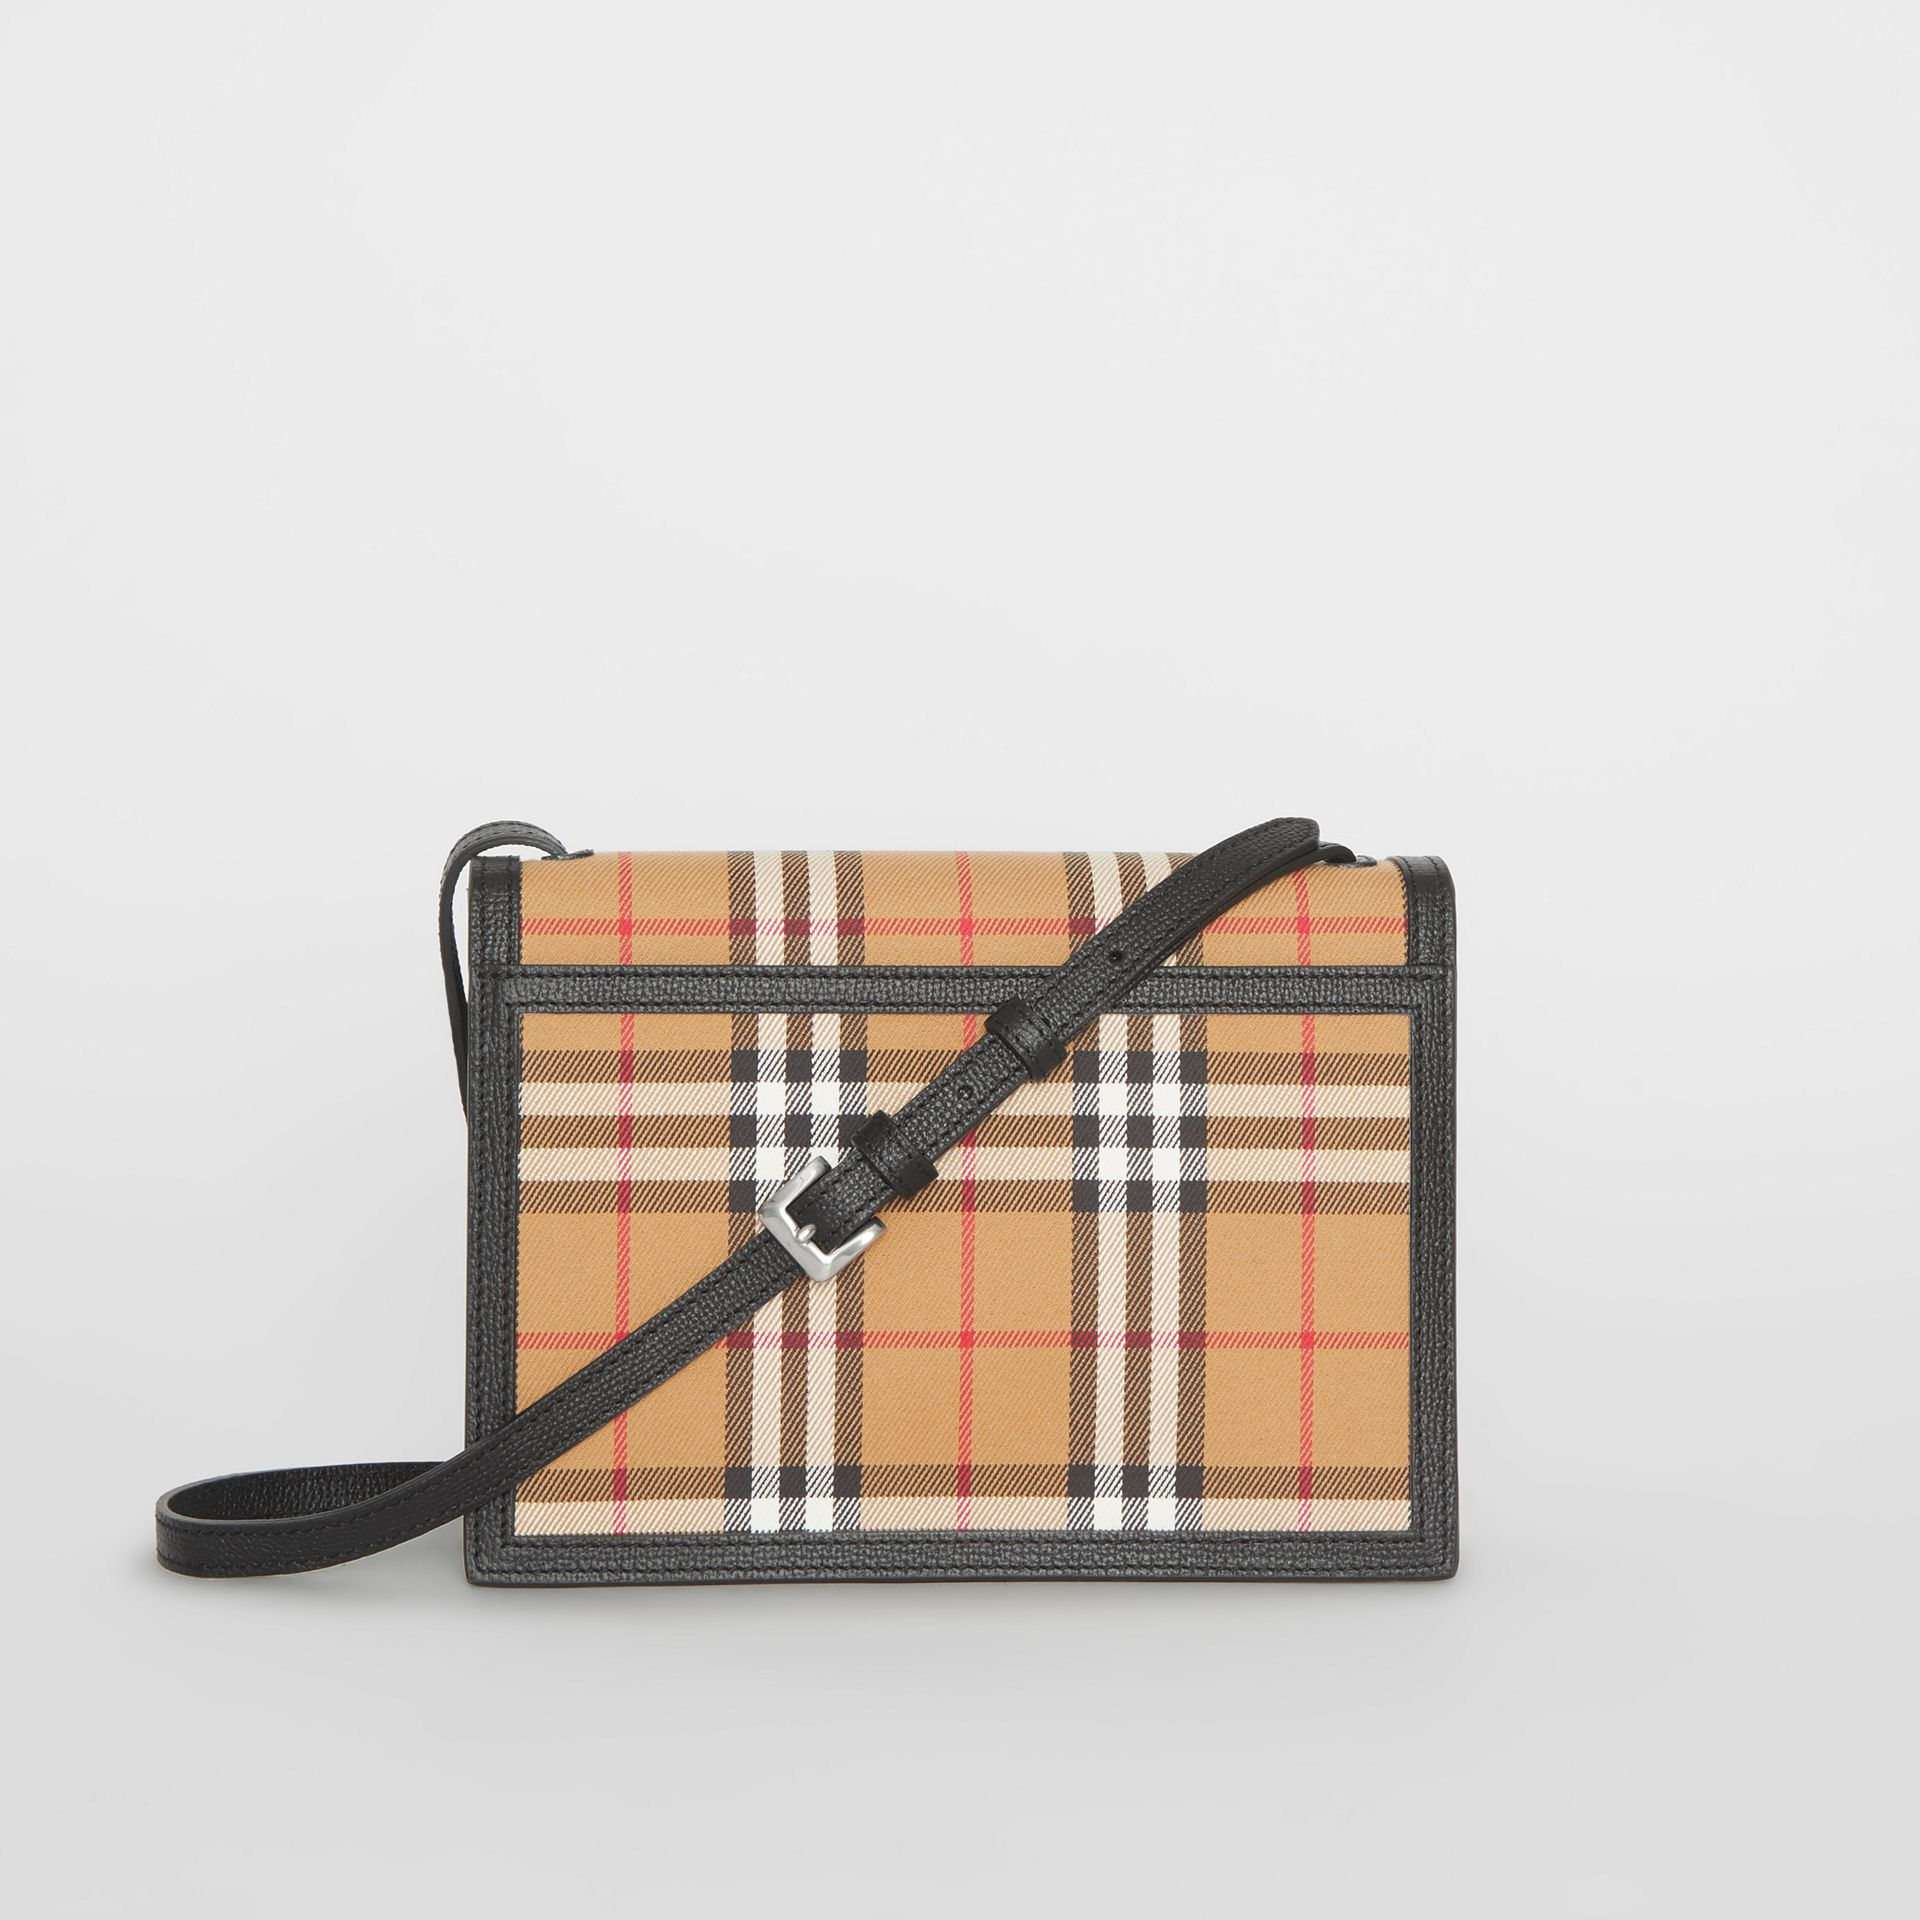 Small Vintage Check and Leather Crossbody Bag in Black - Women | Burberry Australia - gallery image 7